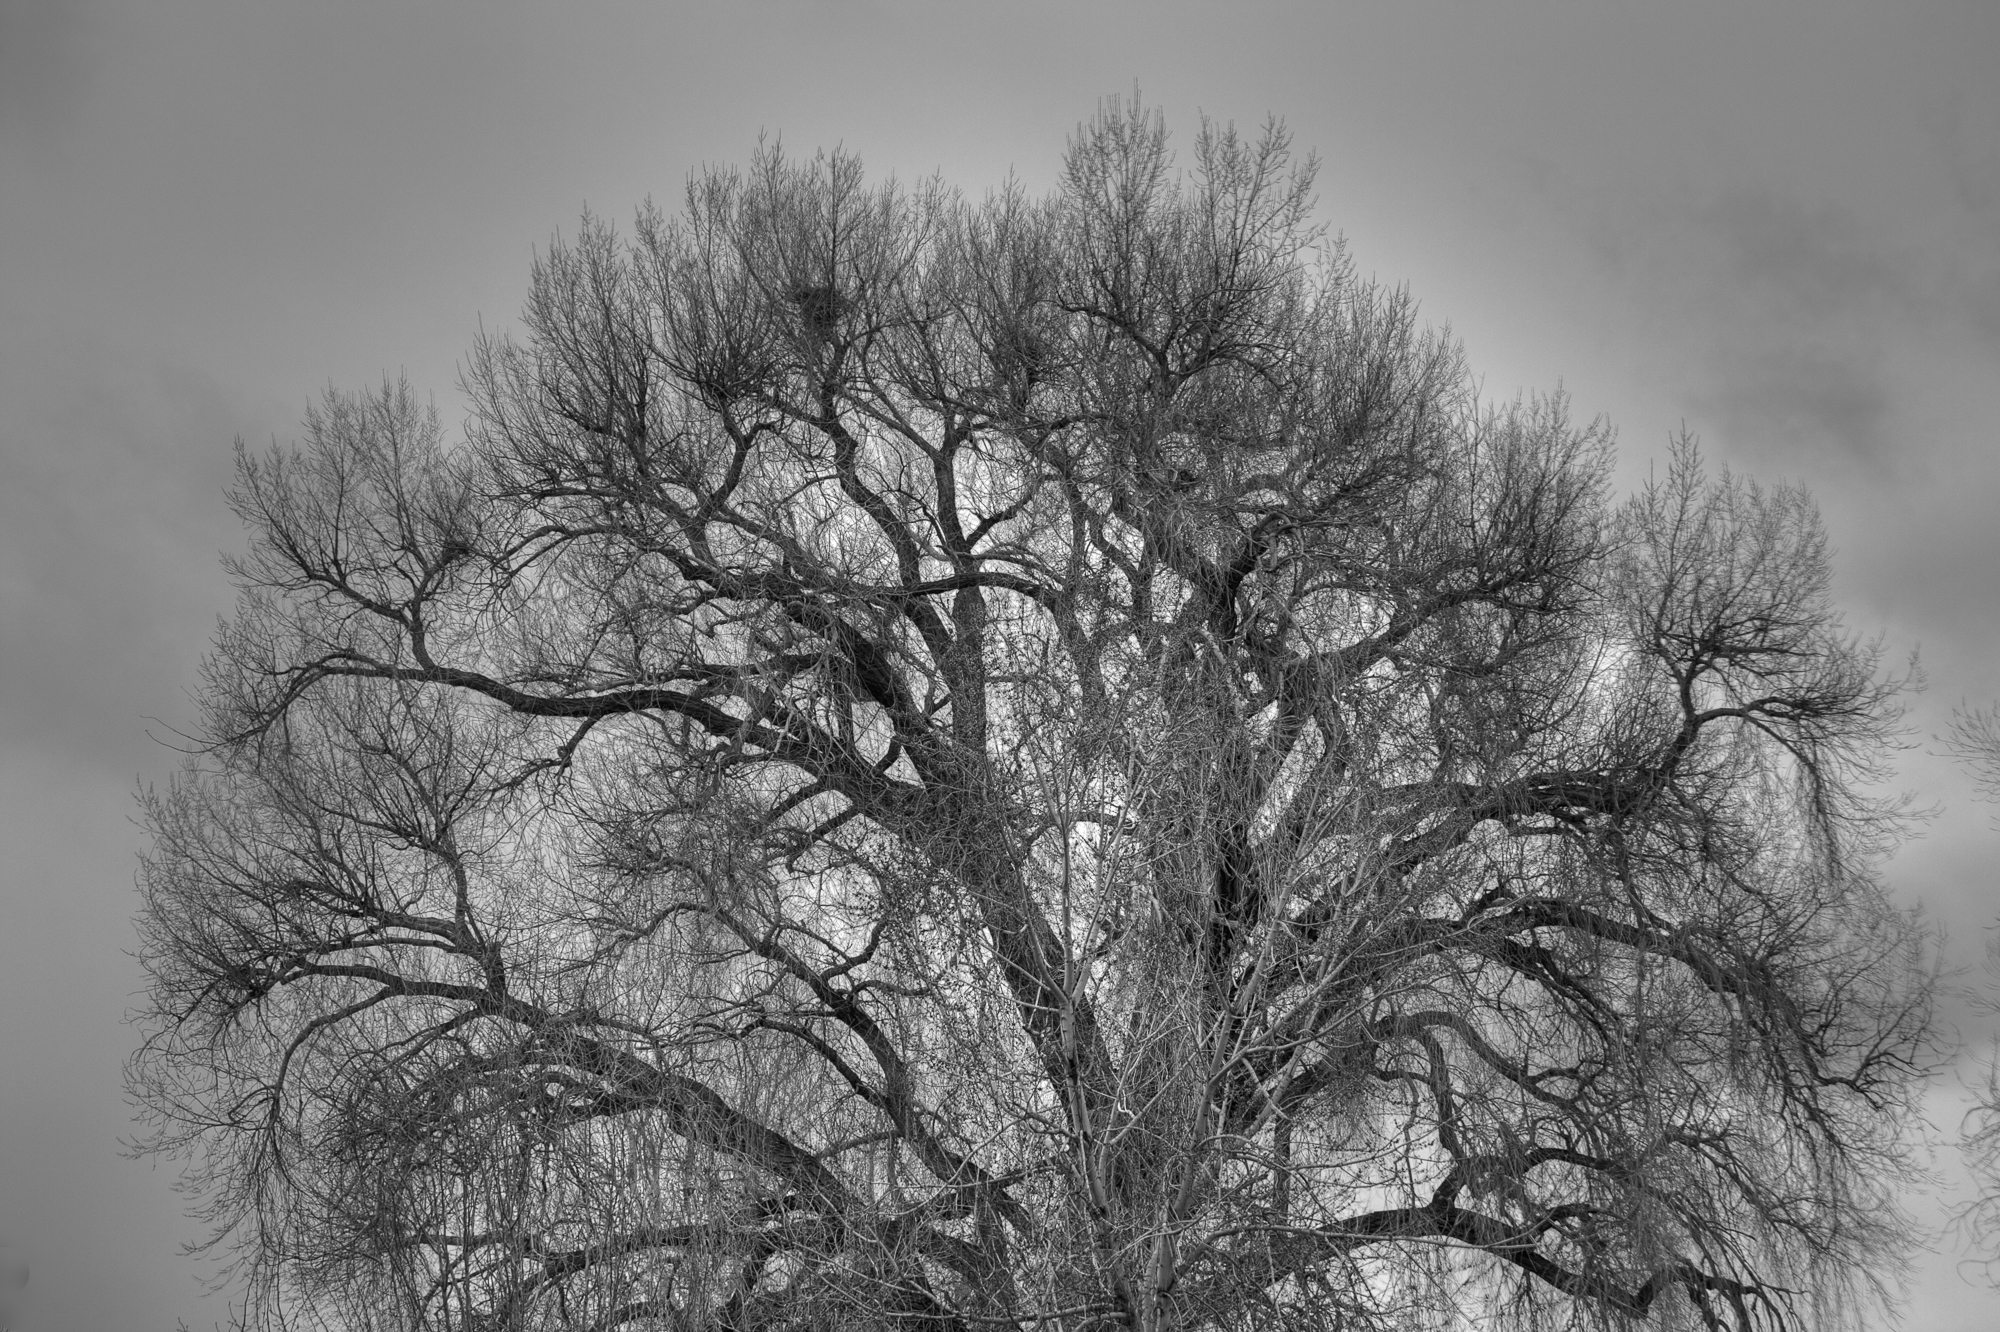 GhostlyCottonwood